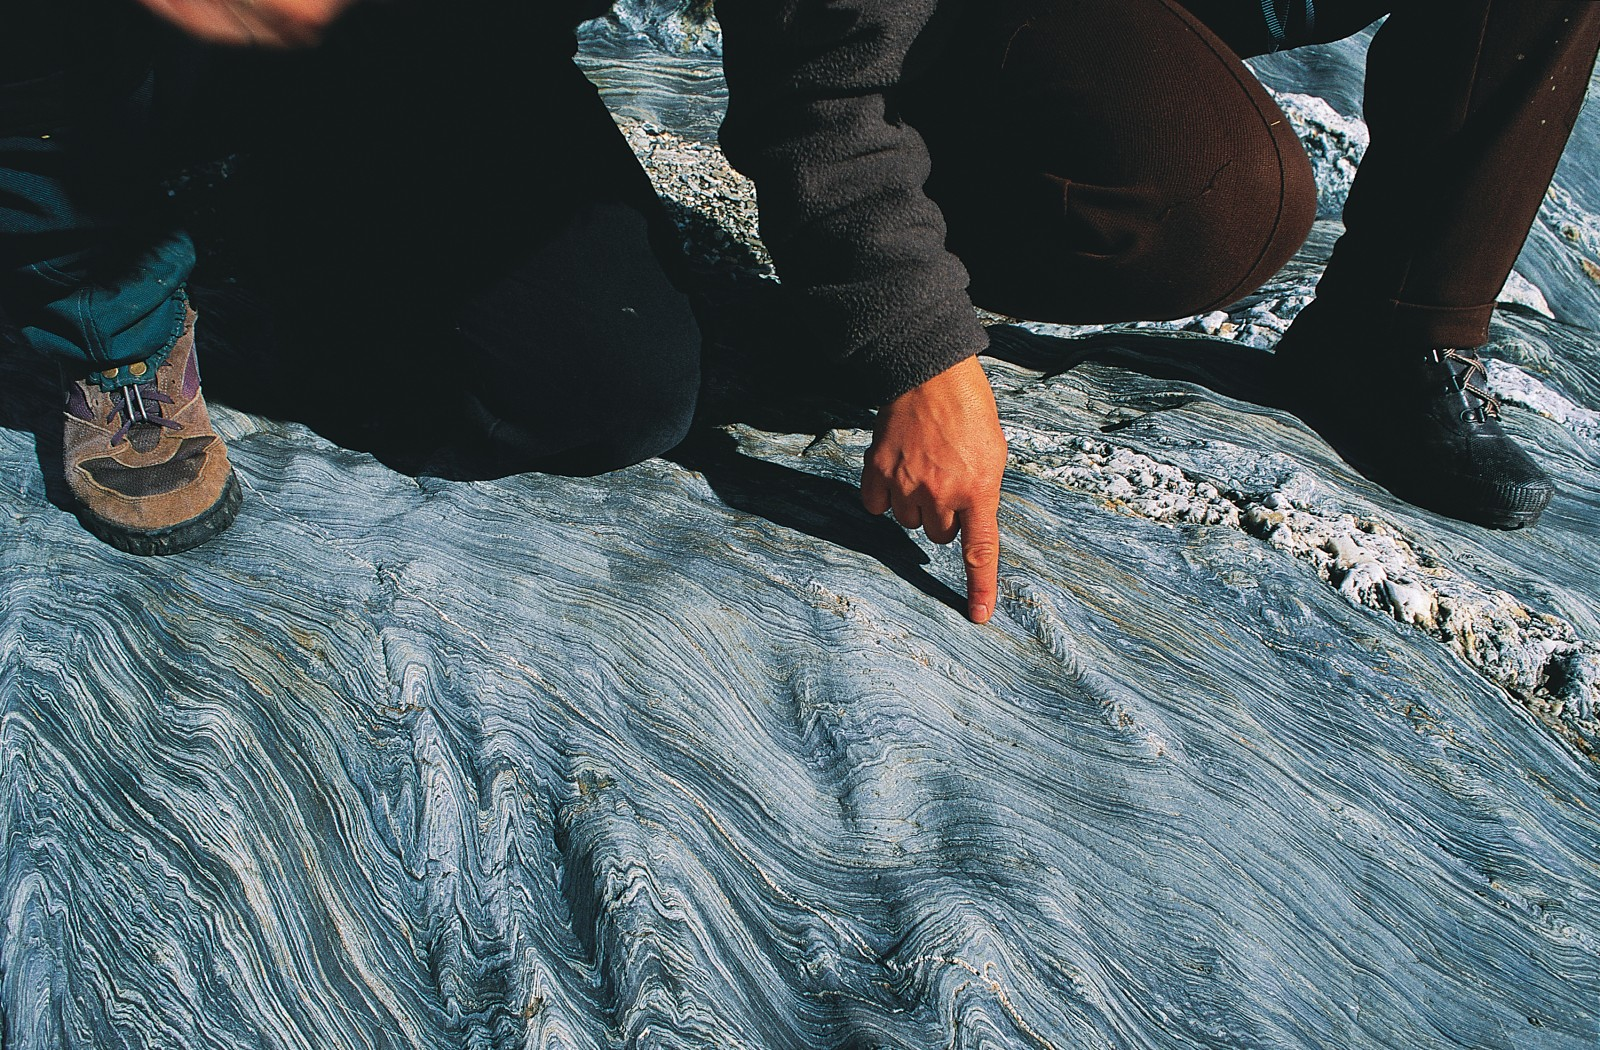 The history of the land is remembered in its rocks, and geologists can discern much from a careful examination of samples, both in the field-such as in these schists on the shore of Lake Hawea, where various cycles of deformation are discernible in the swirls-and in the lab, where samples can be dated and sections of rock examined under the microscope.